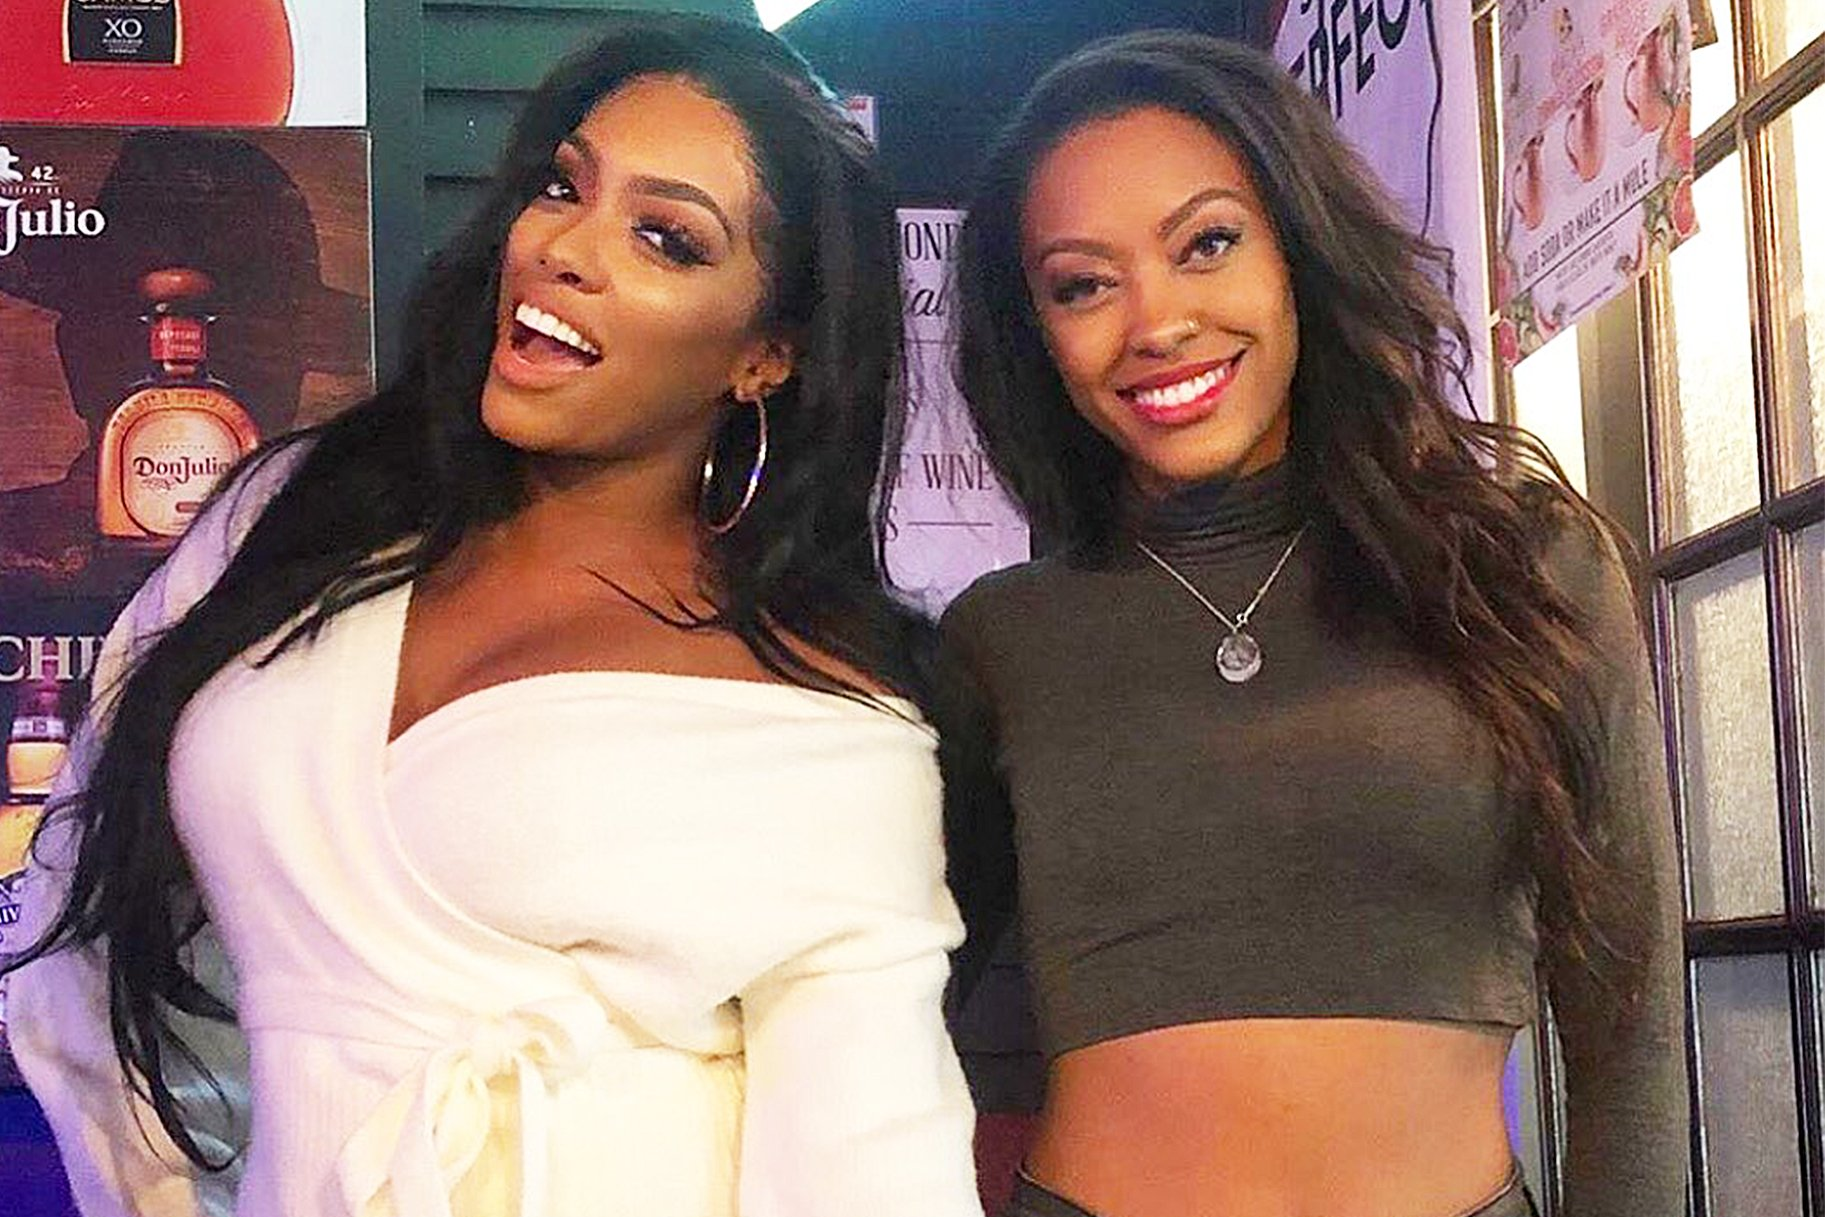 Porsha Williams' Sister, Lauren Williams Posted On Her IG Account While She Was Arrested